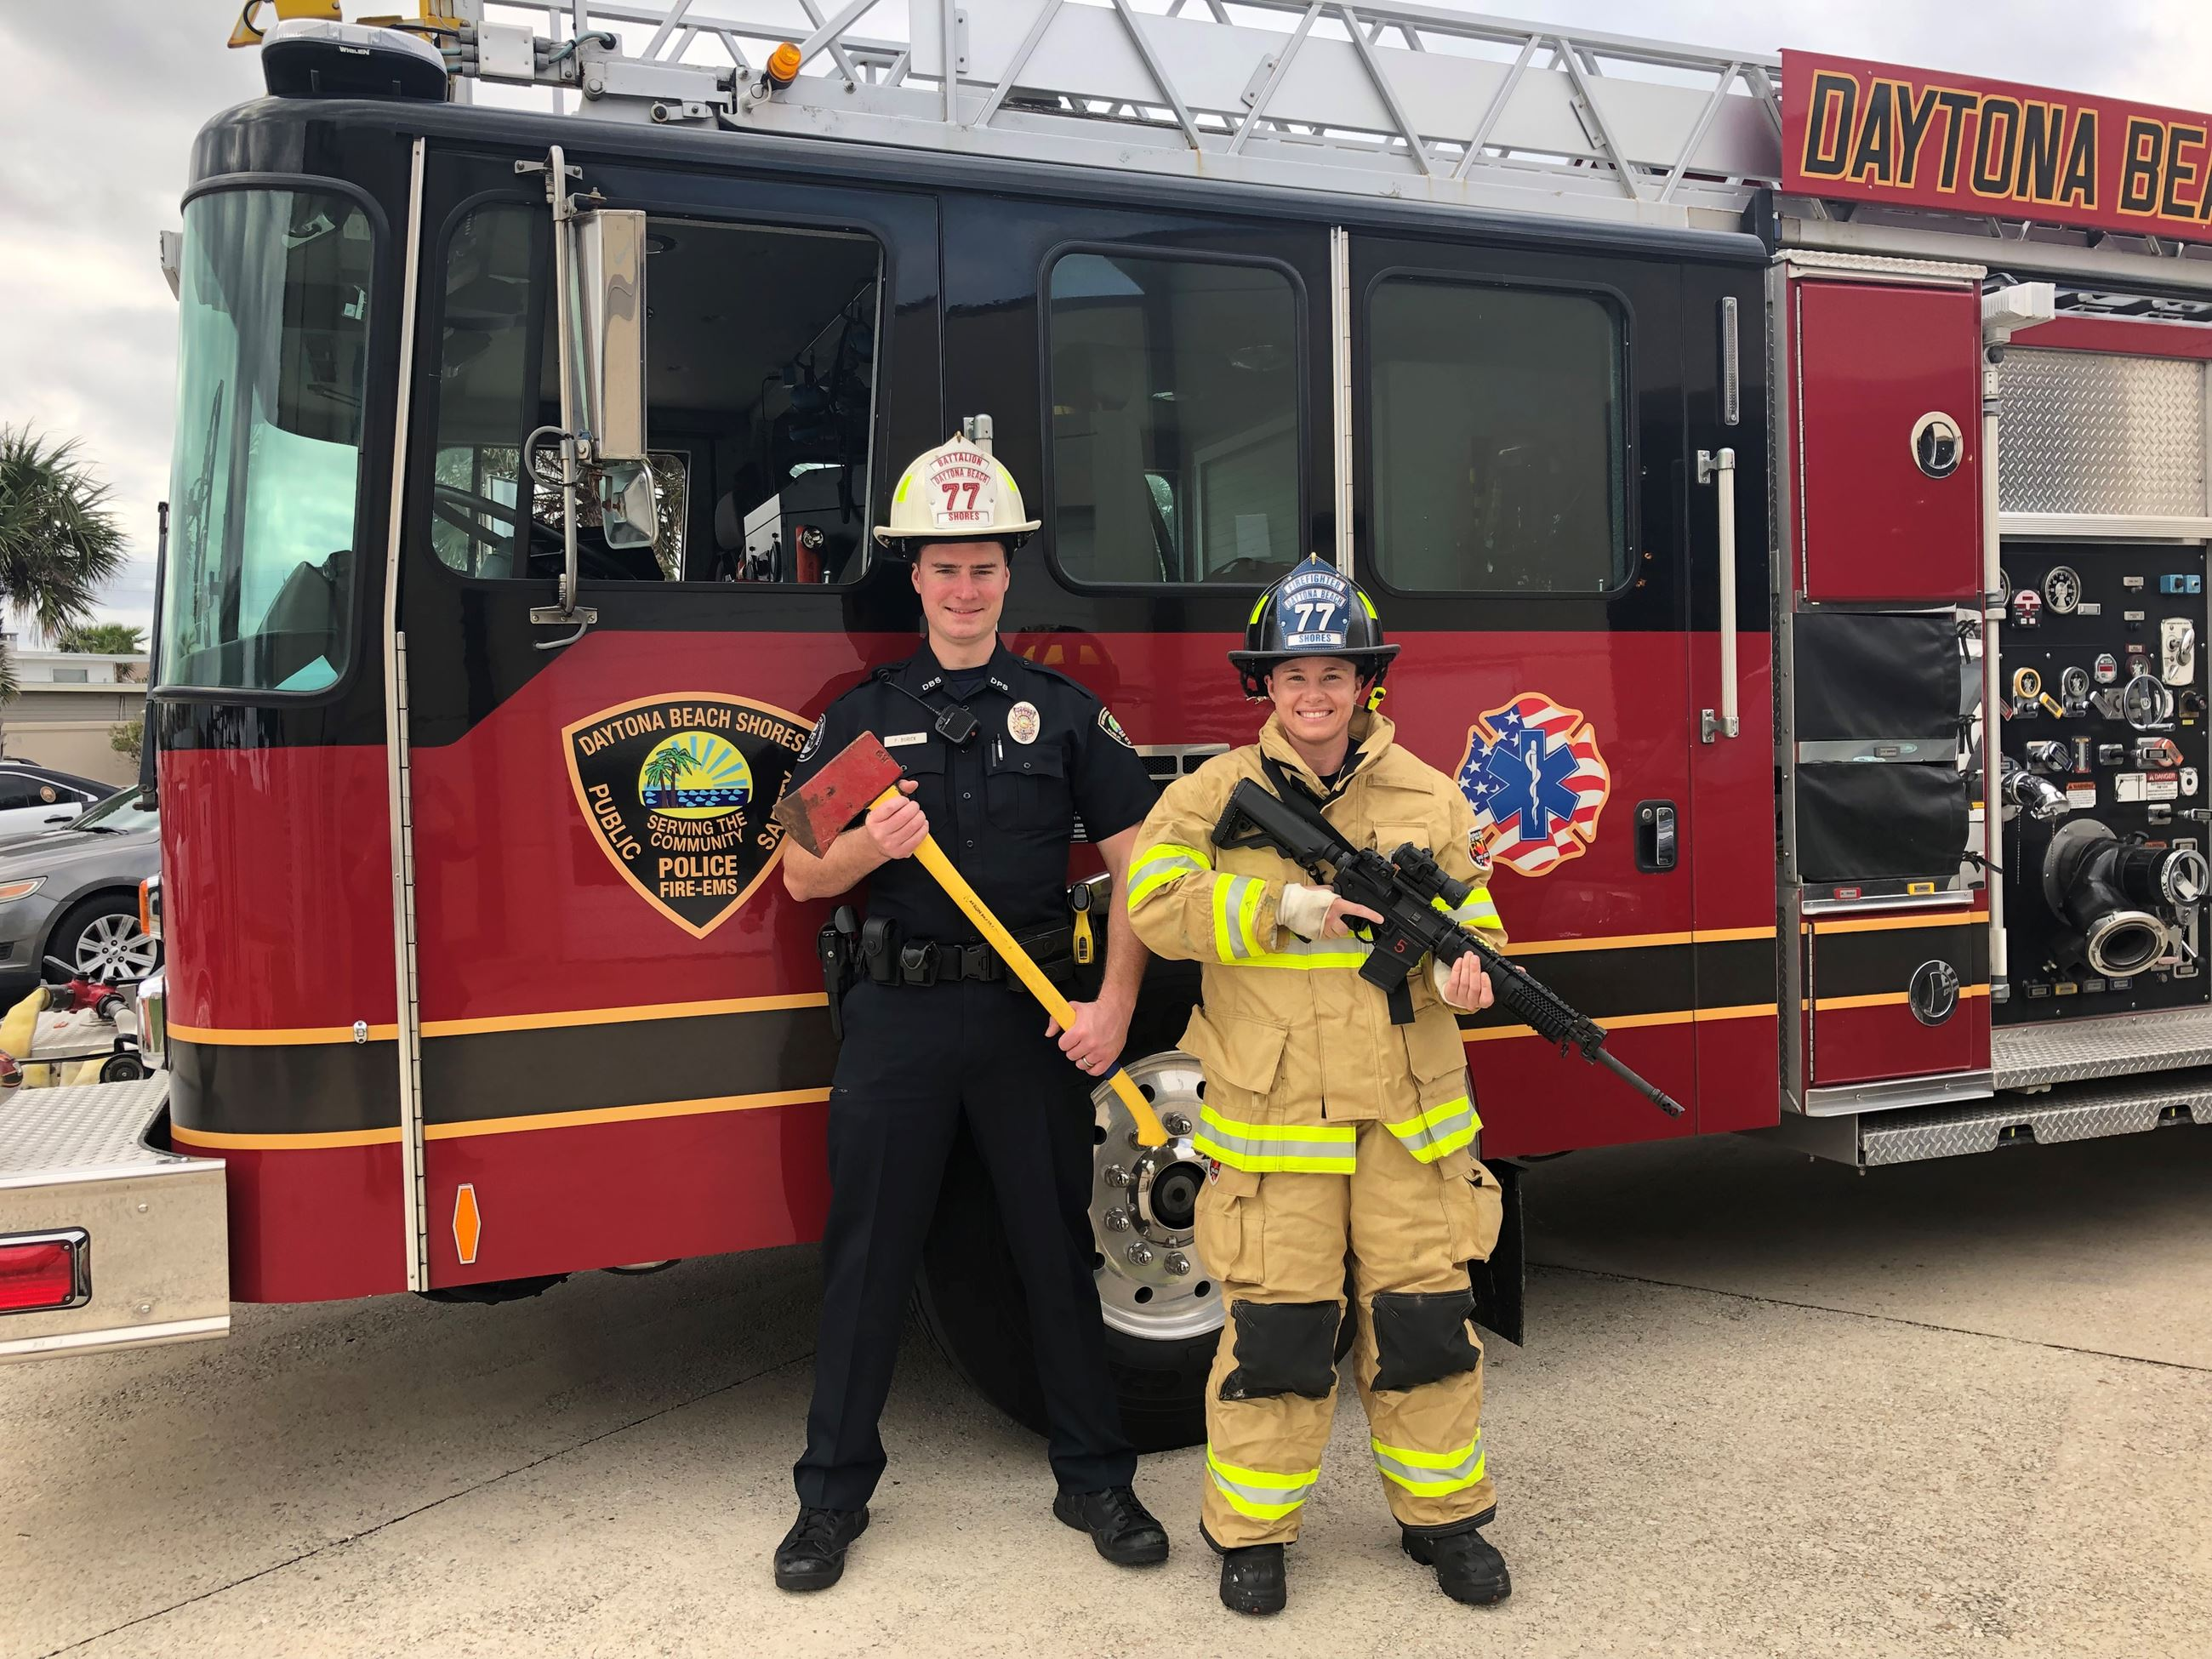 A firetruck with an officer holding an axe and a firefighter holding a gun